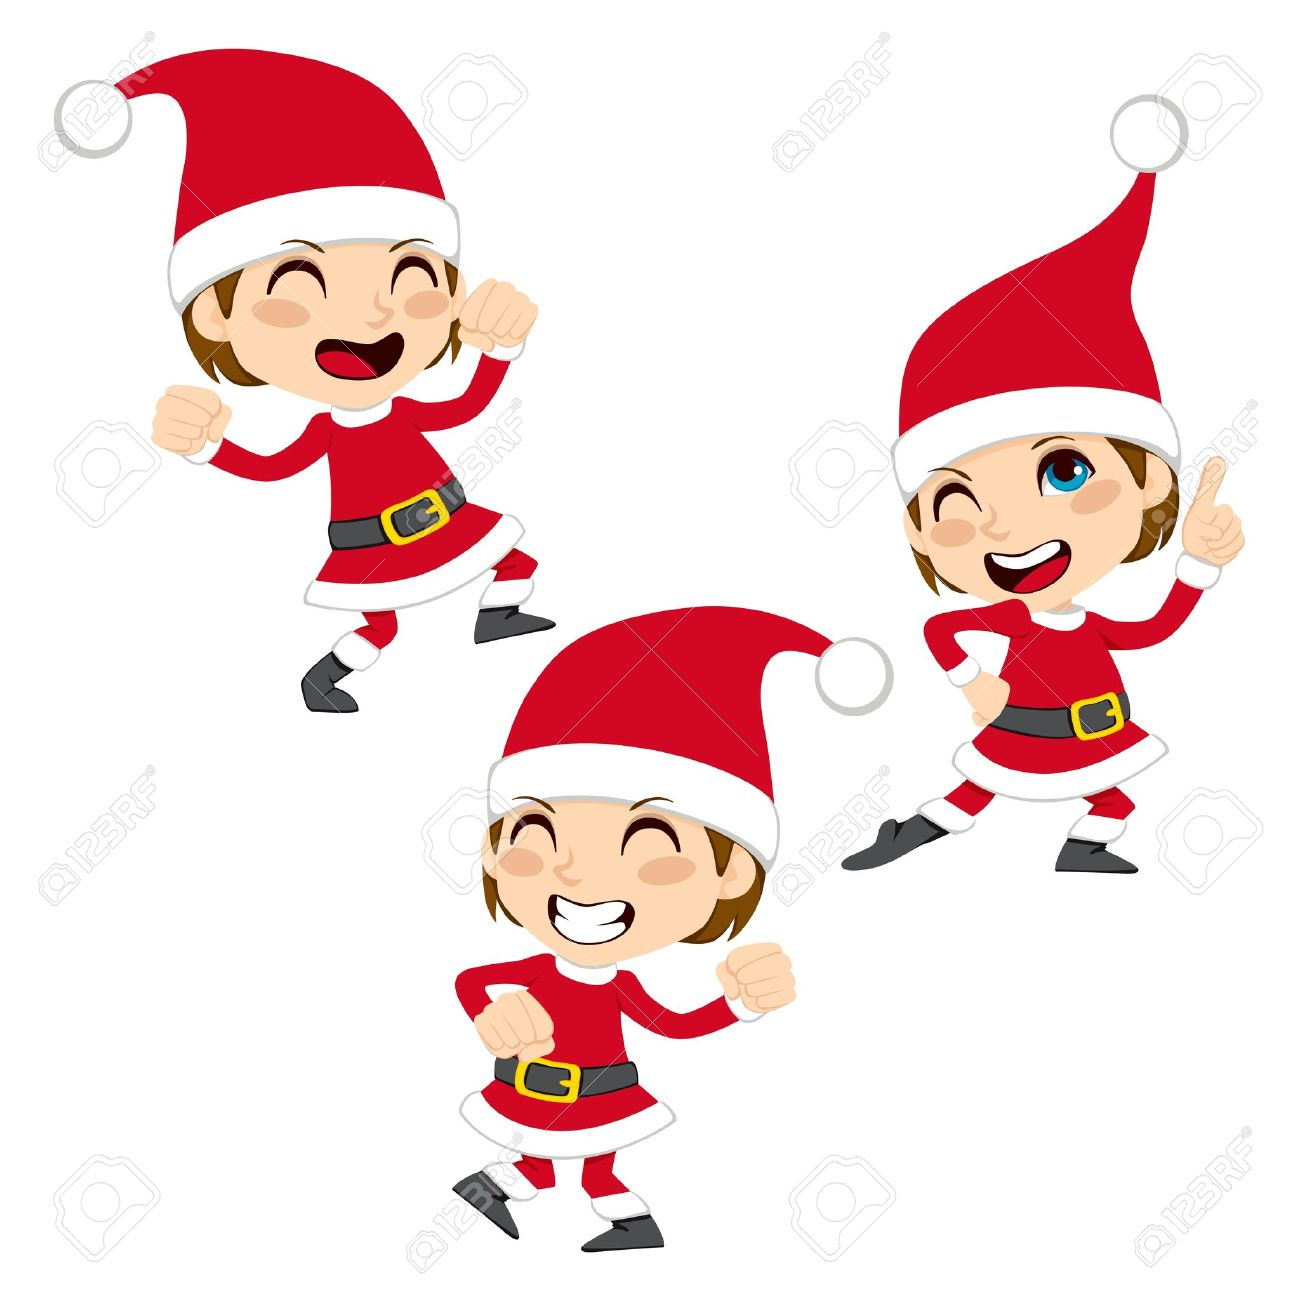 Christmas Dancing Clipart.